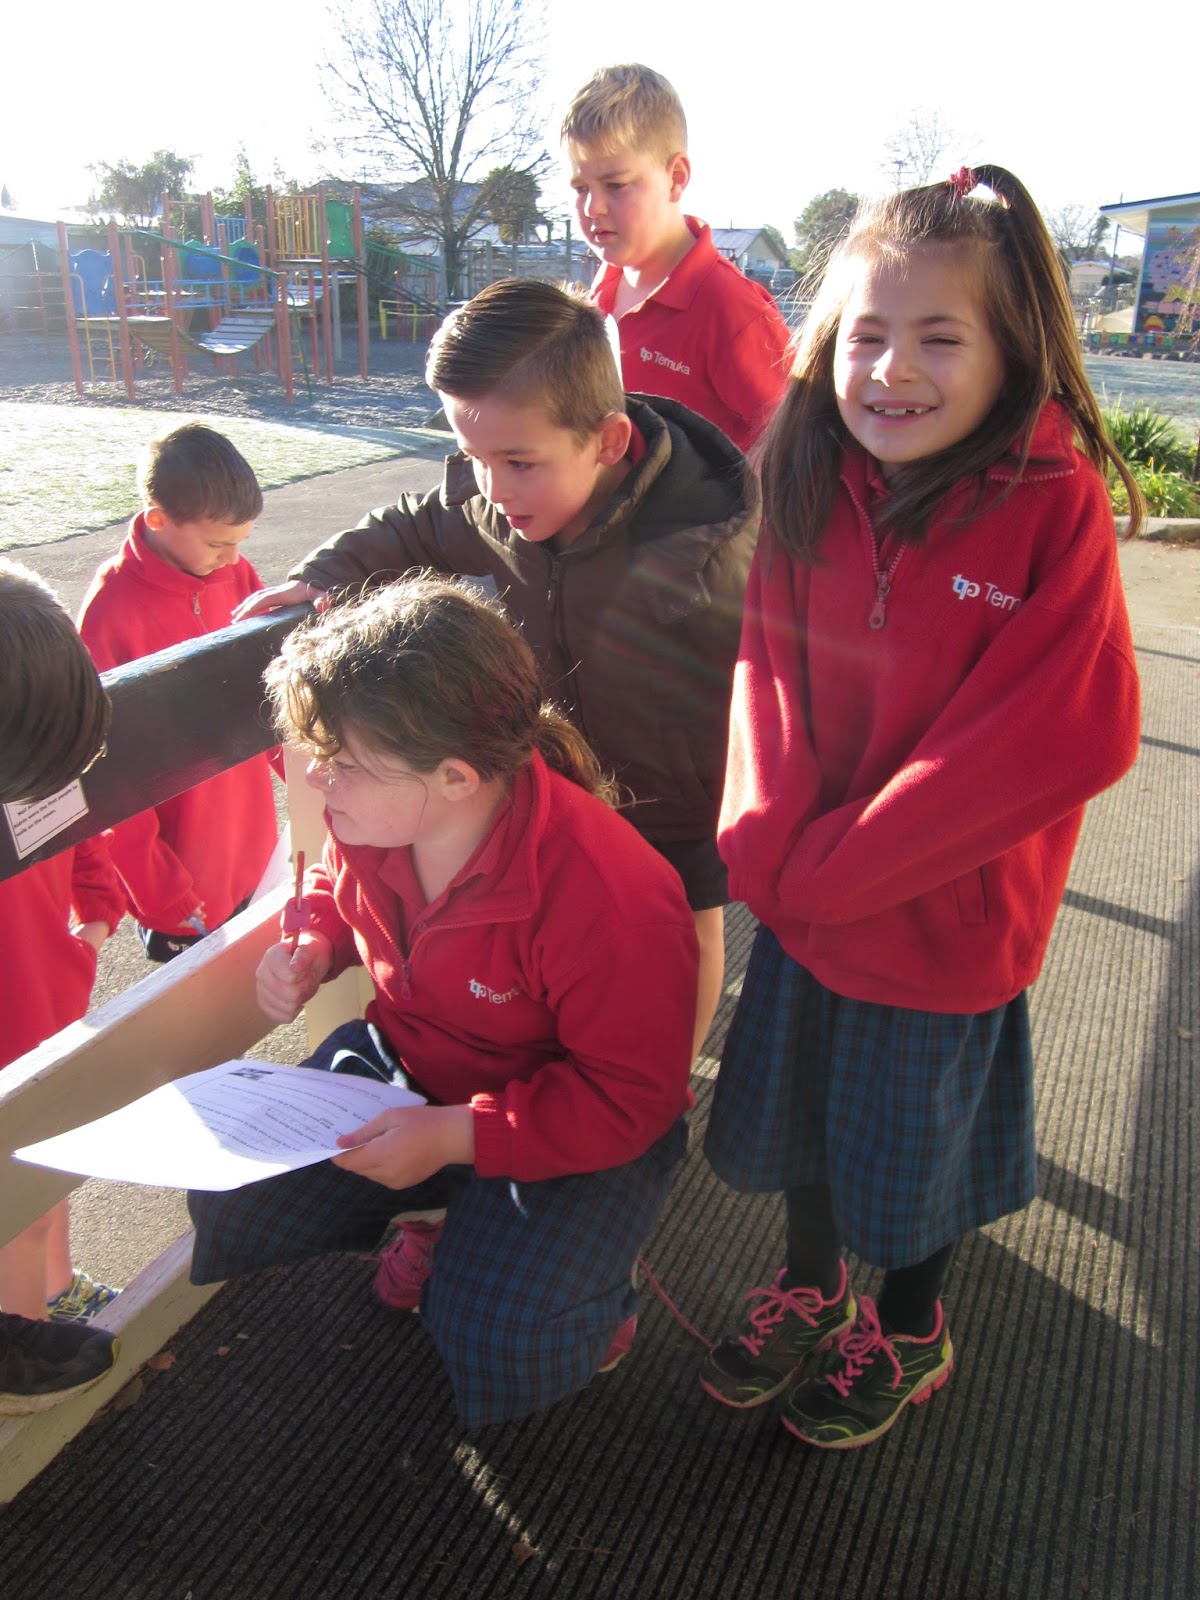 Room 1 Solar System Scavenger Hunt With Buddy Class